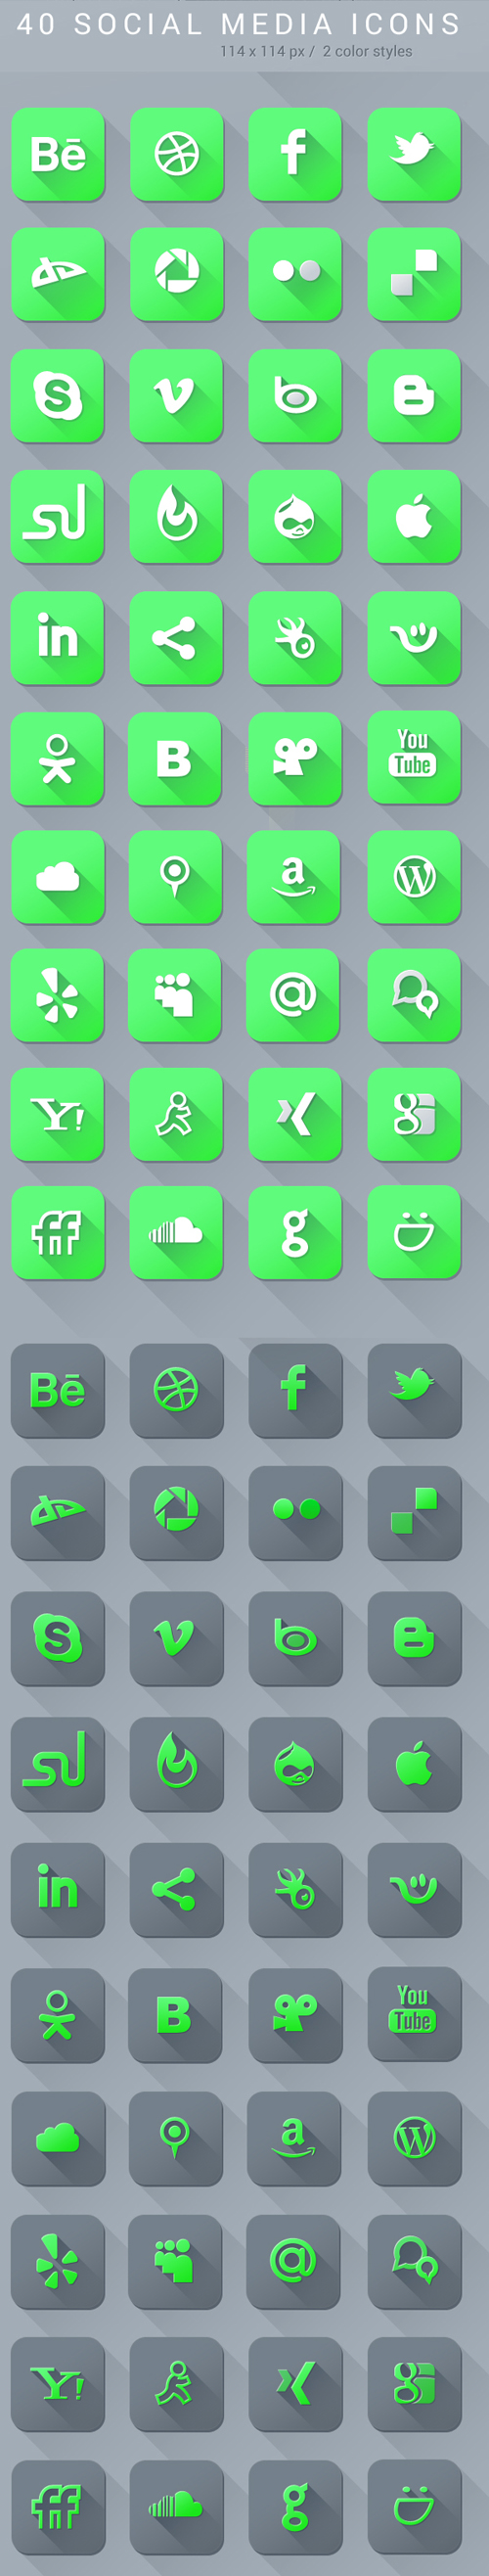 Free Social Media Icons PSD File